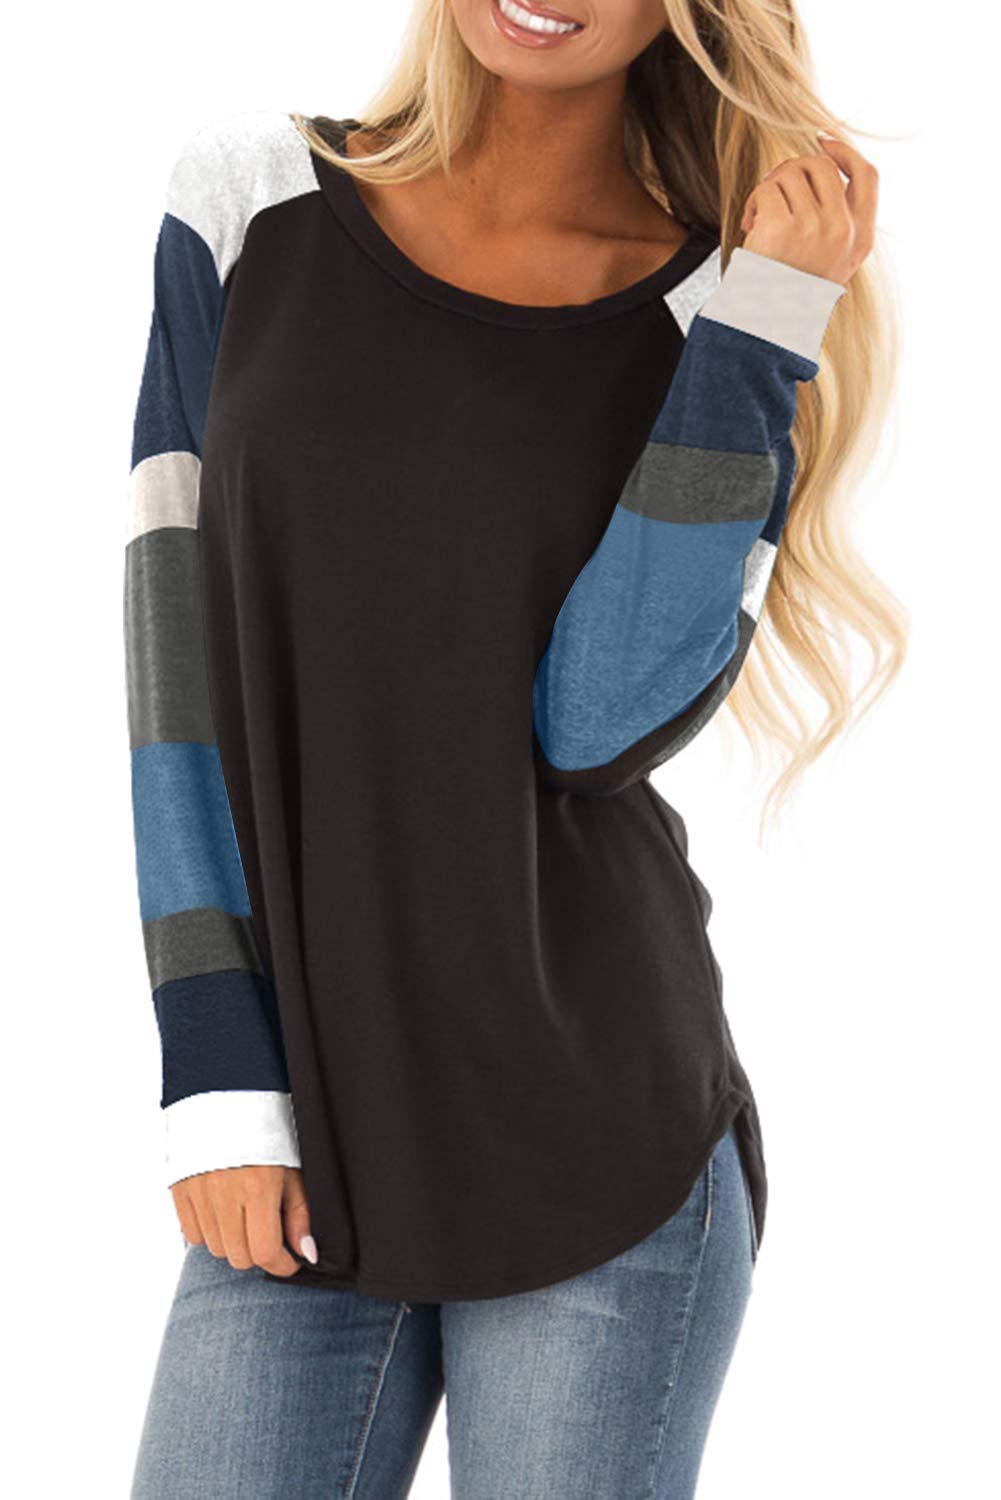 Asvivid Womens Casual Color Block Long Sleeve Pullover Tops Loose Lightweight Tunic Sweatshirt